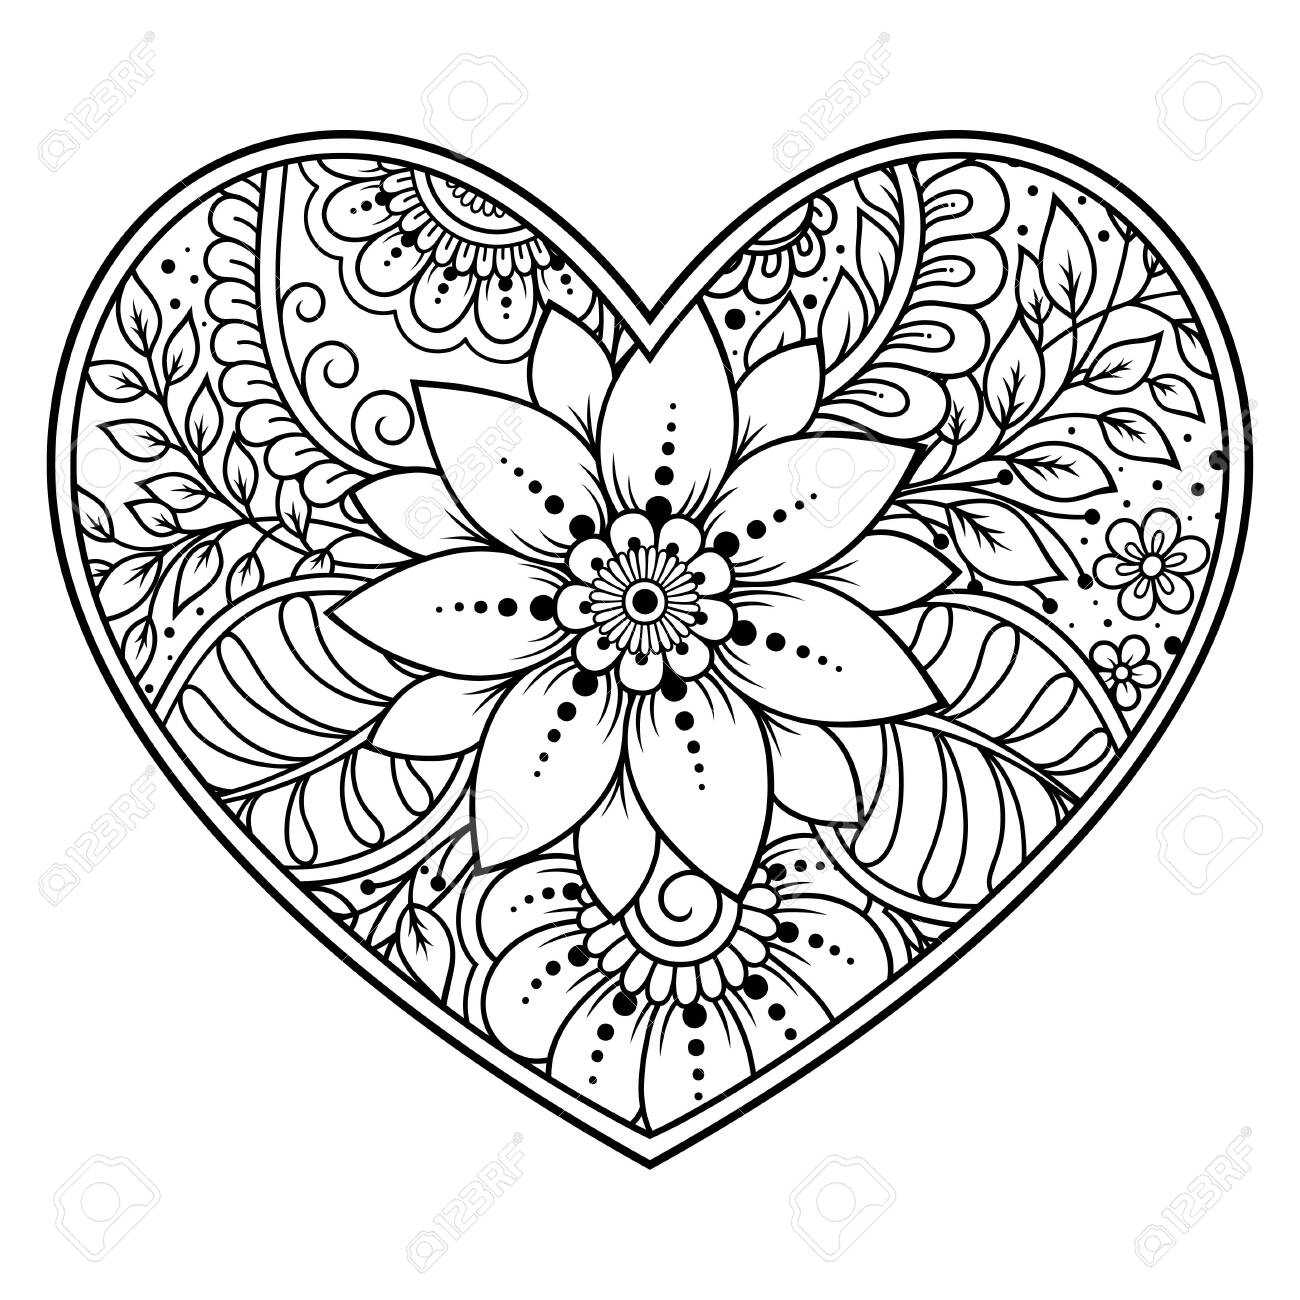 Mehndi flower pattern in form of heart for Henna drawing and tattoo. Decoration in ethnic oriental, Indian style. Valentine's day greetings. Coloring book page. - 131297721